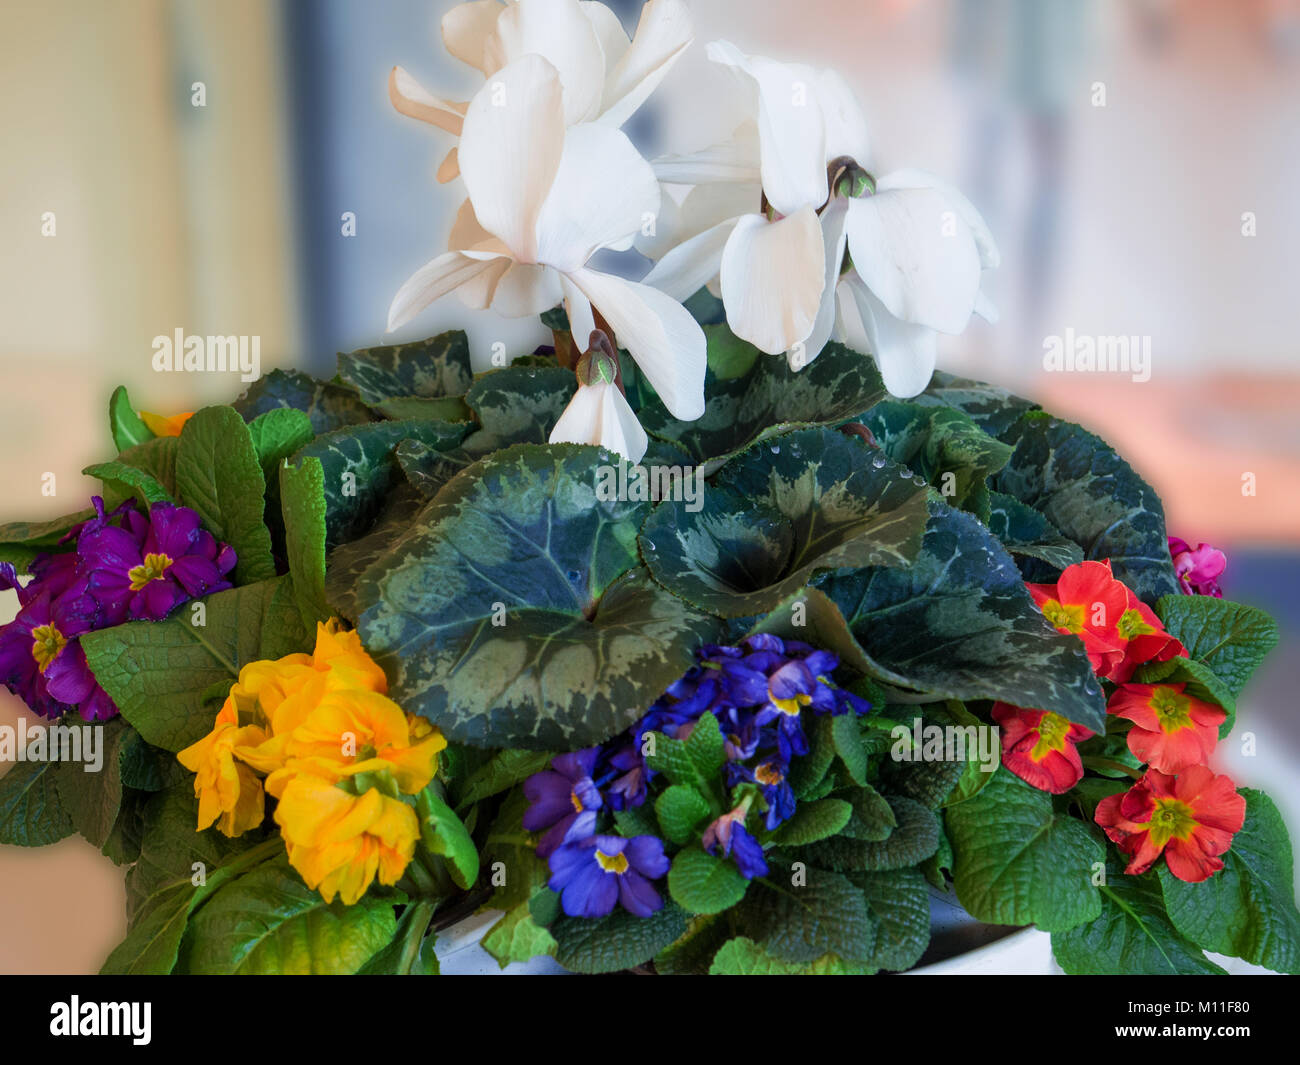 The Arrival Of Spring Stockfotos & The Arrival Of Spring Bilder - Alamy